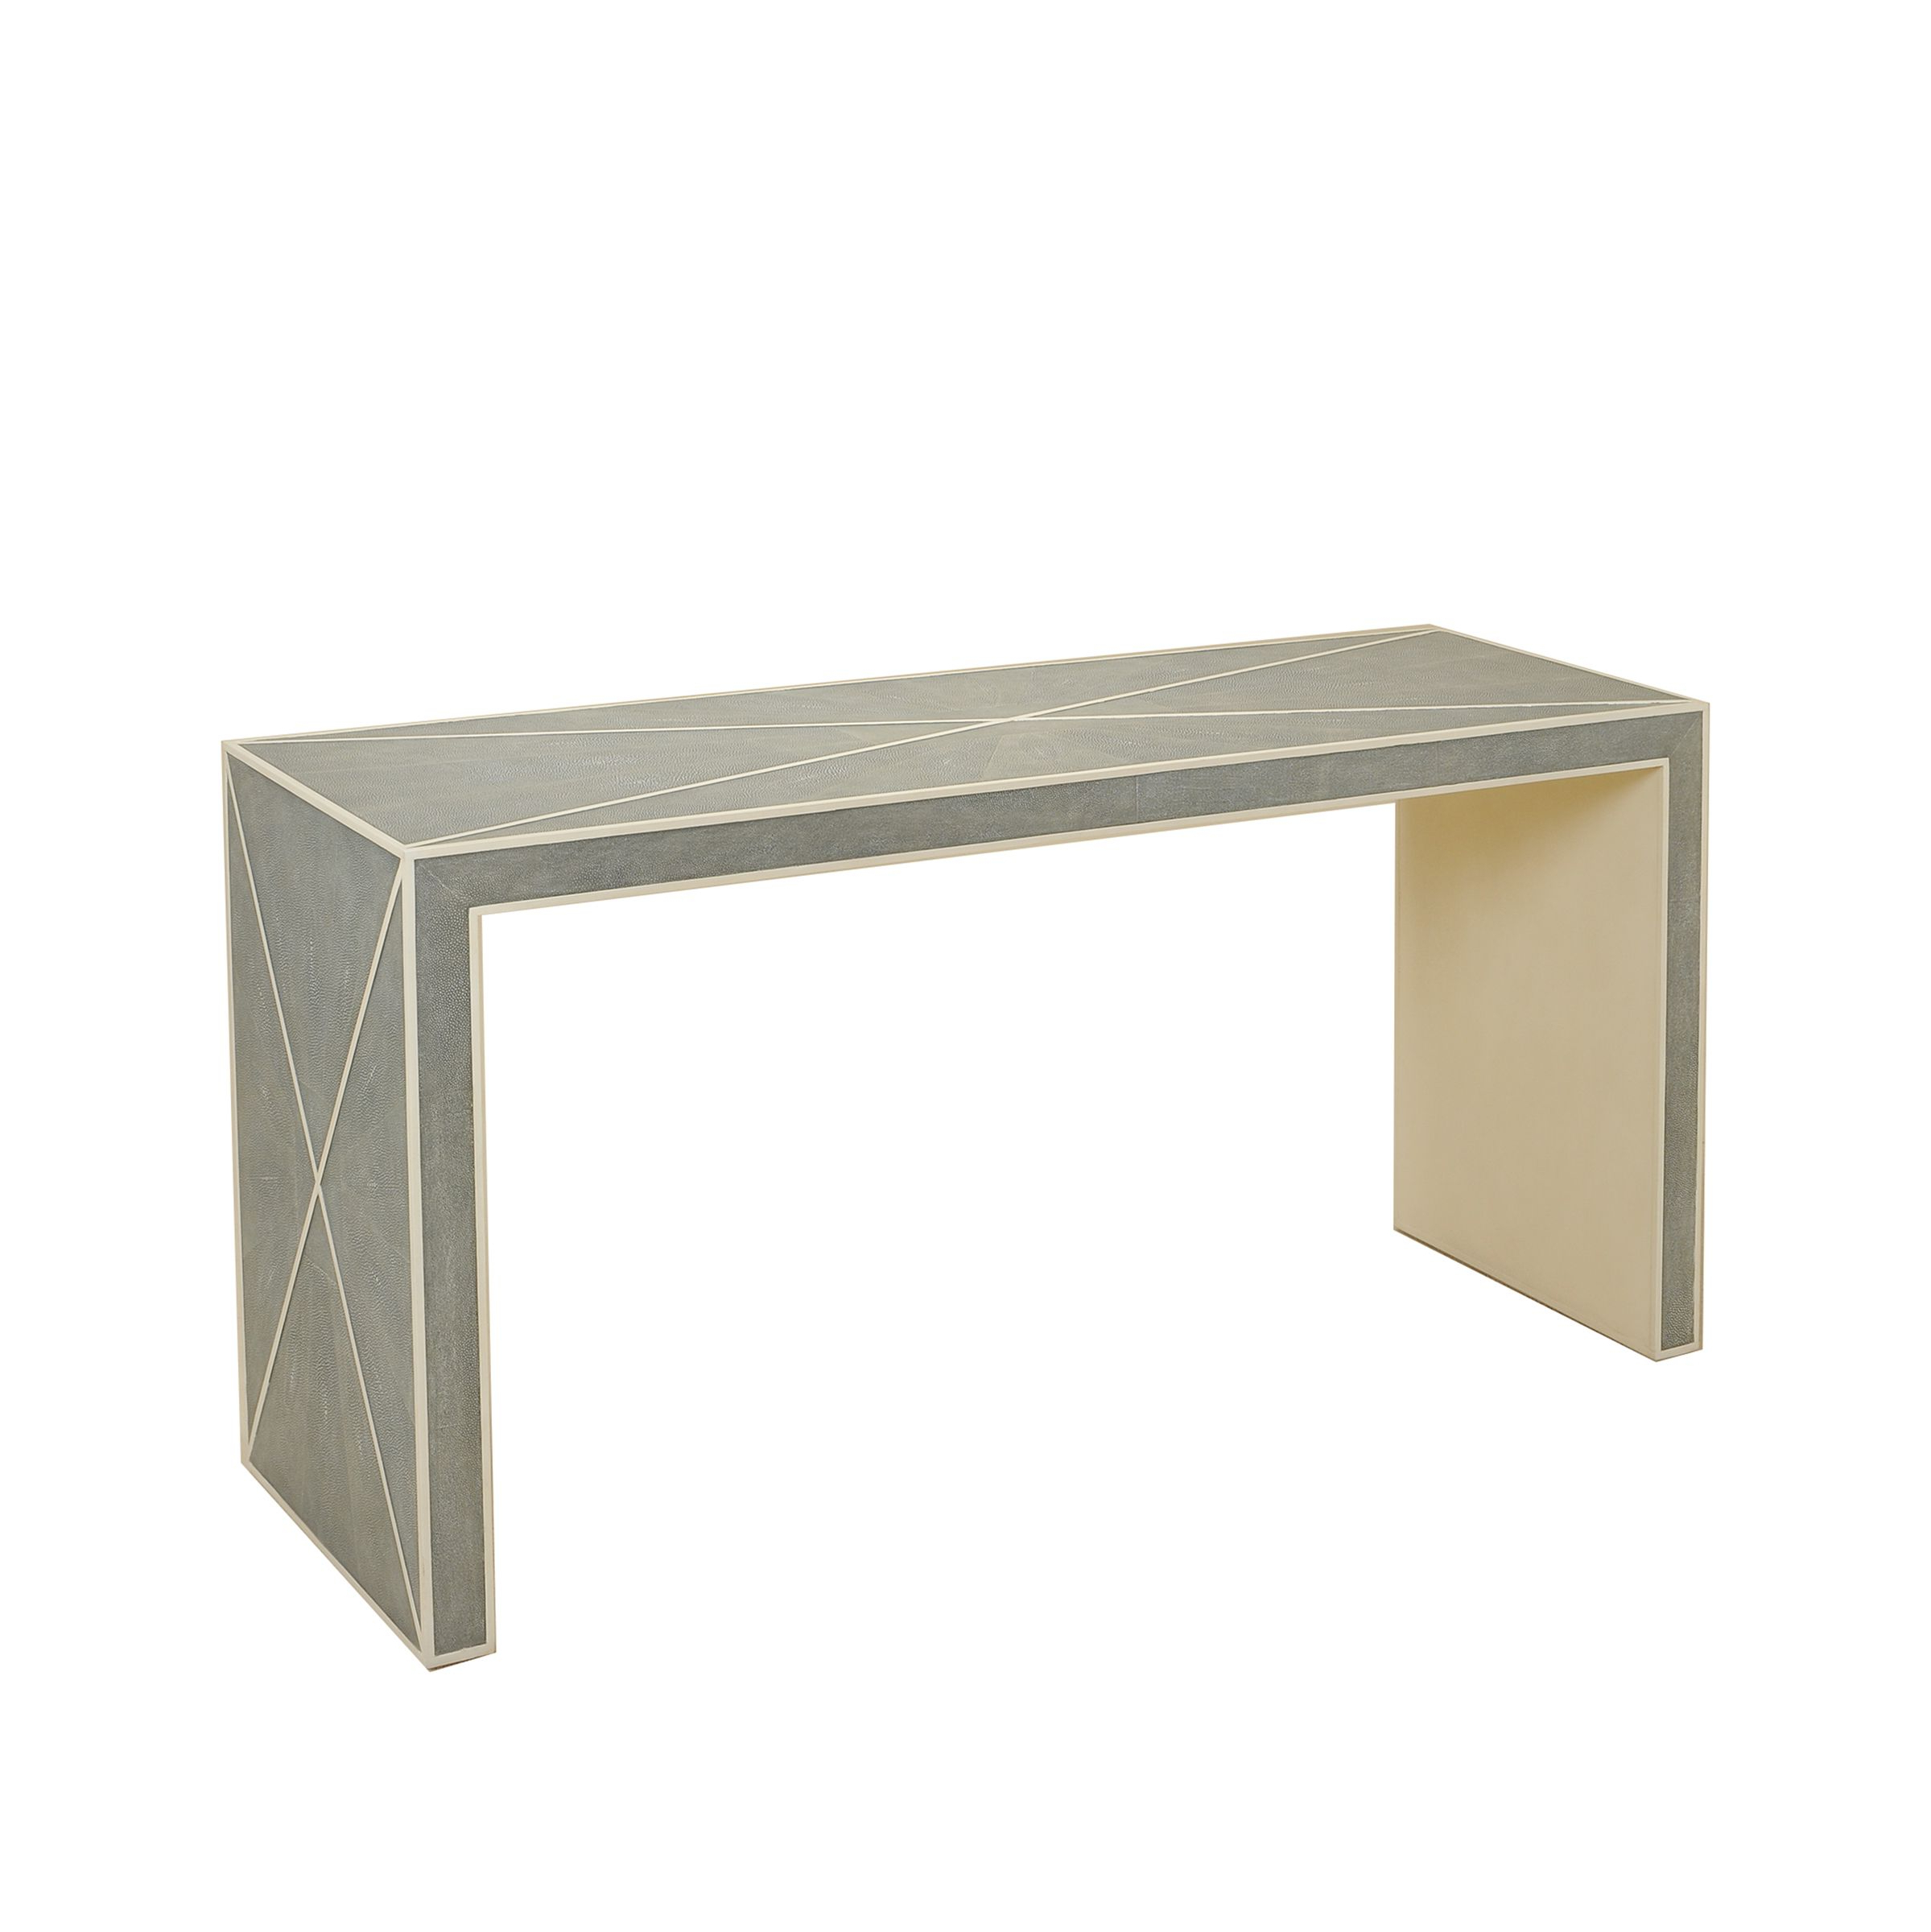 Pinerin Forrey On Phillip | Pinterest | Console Table, Furniture Throughout Phillip Brass Console Tables (View 17 of 20)